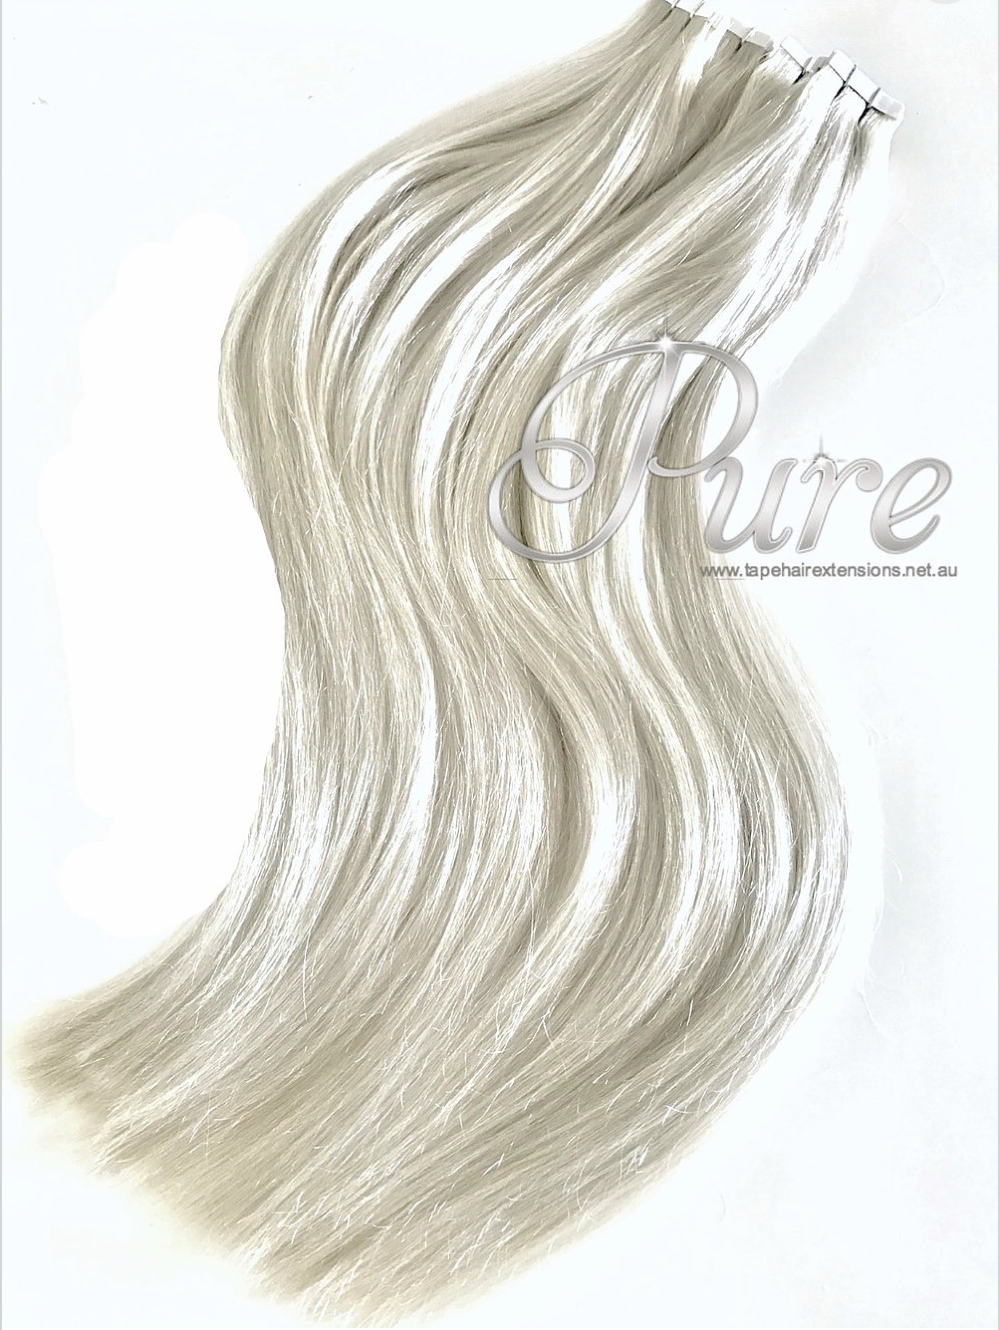 White Blonde Hair Extensions Zippay Buy Now Pay Later White Blonde